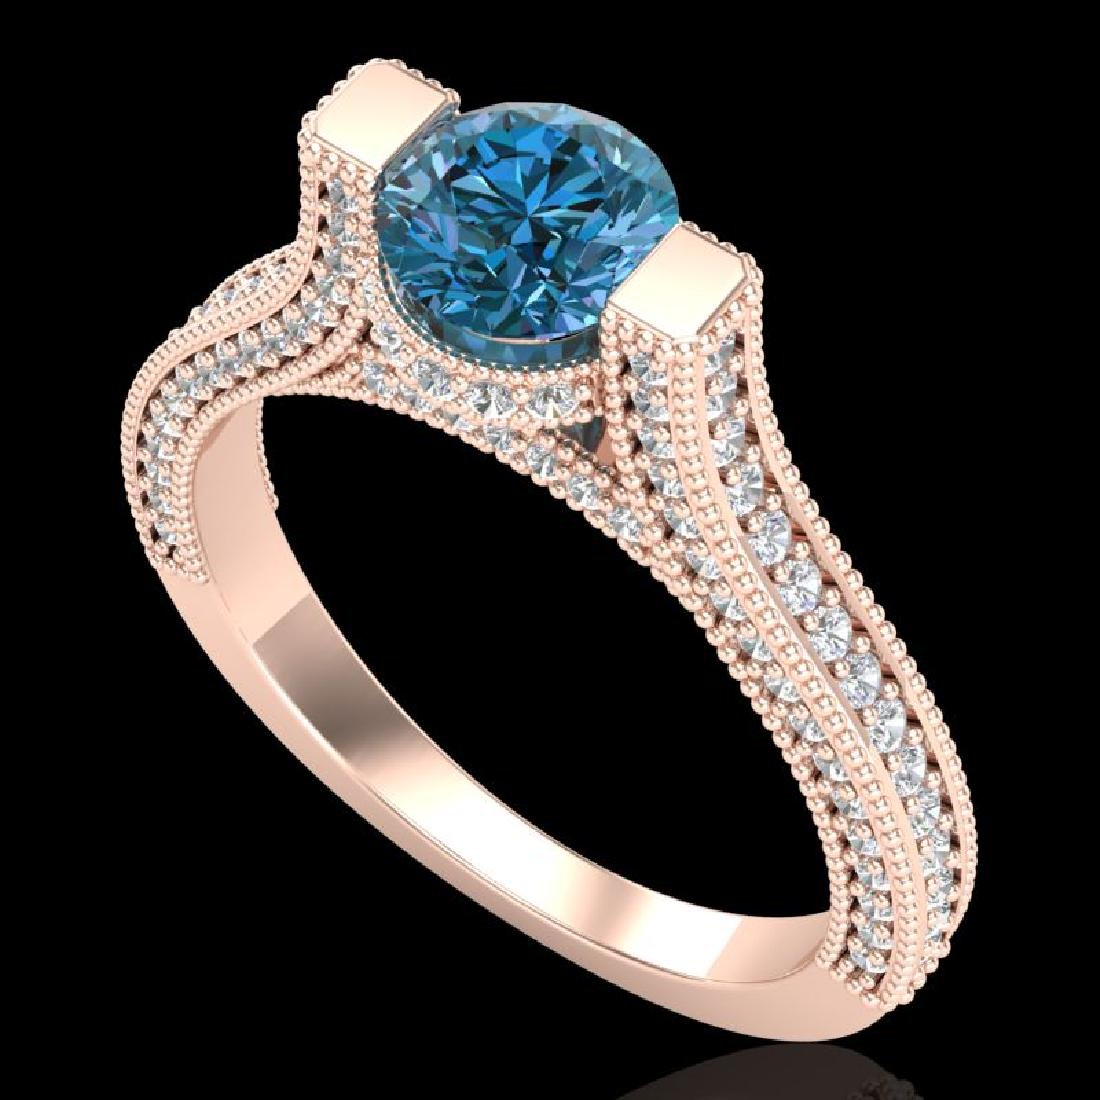 2 CTW Intense Blue Diamond Engagement Micro Pave Ring